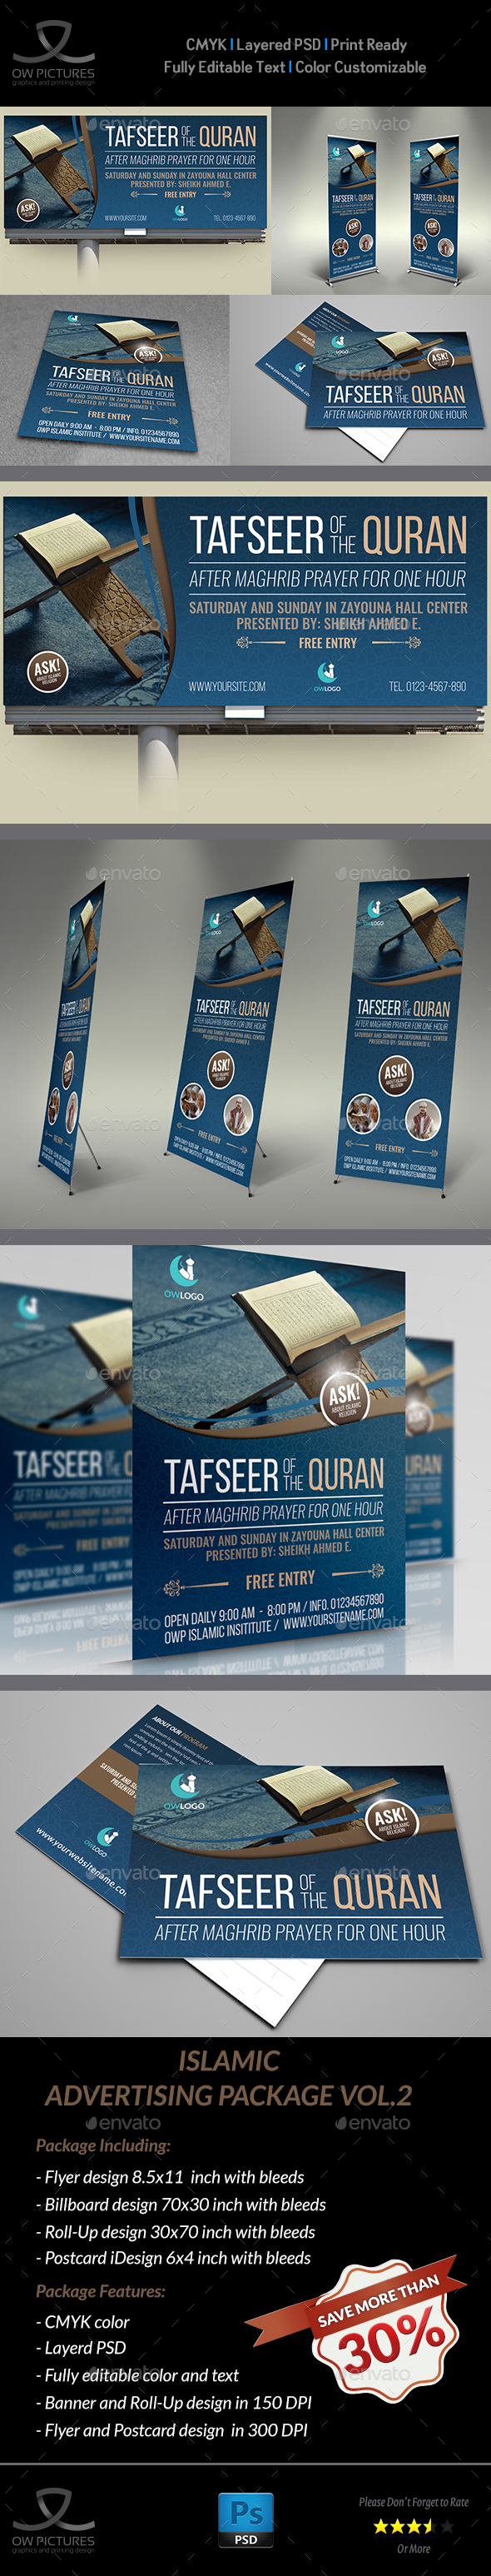 Islamic Advertising Bundle Vol.2 - Signage Print Templates